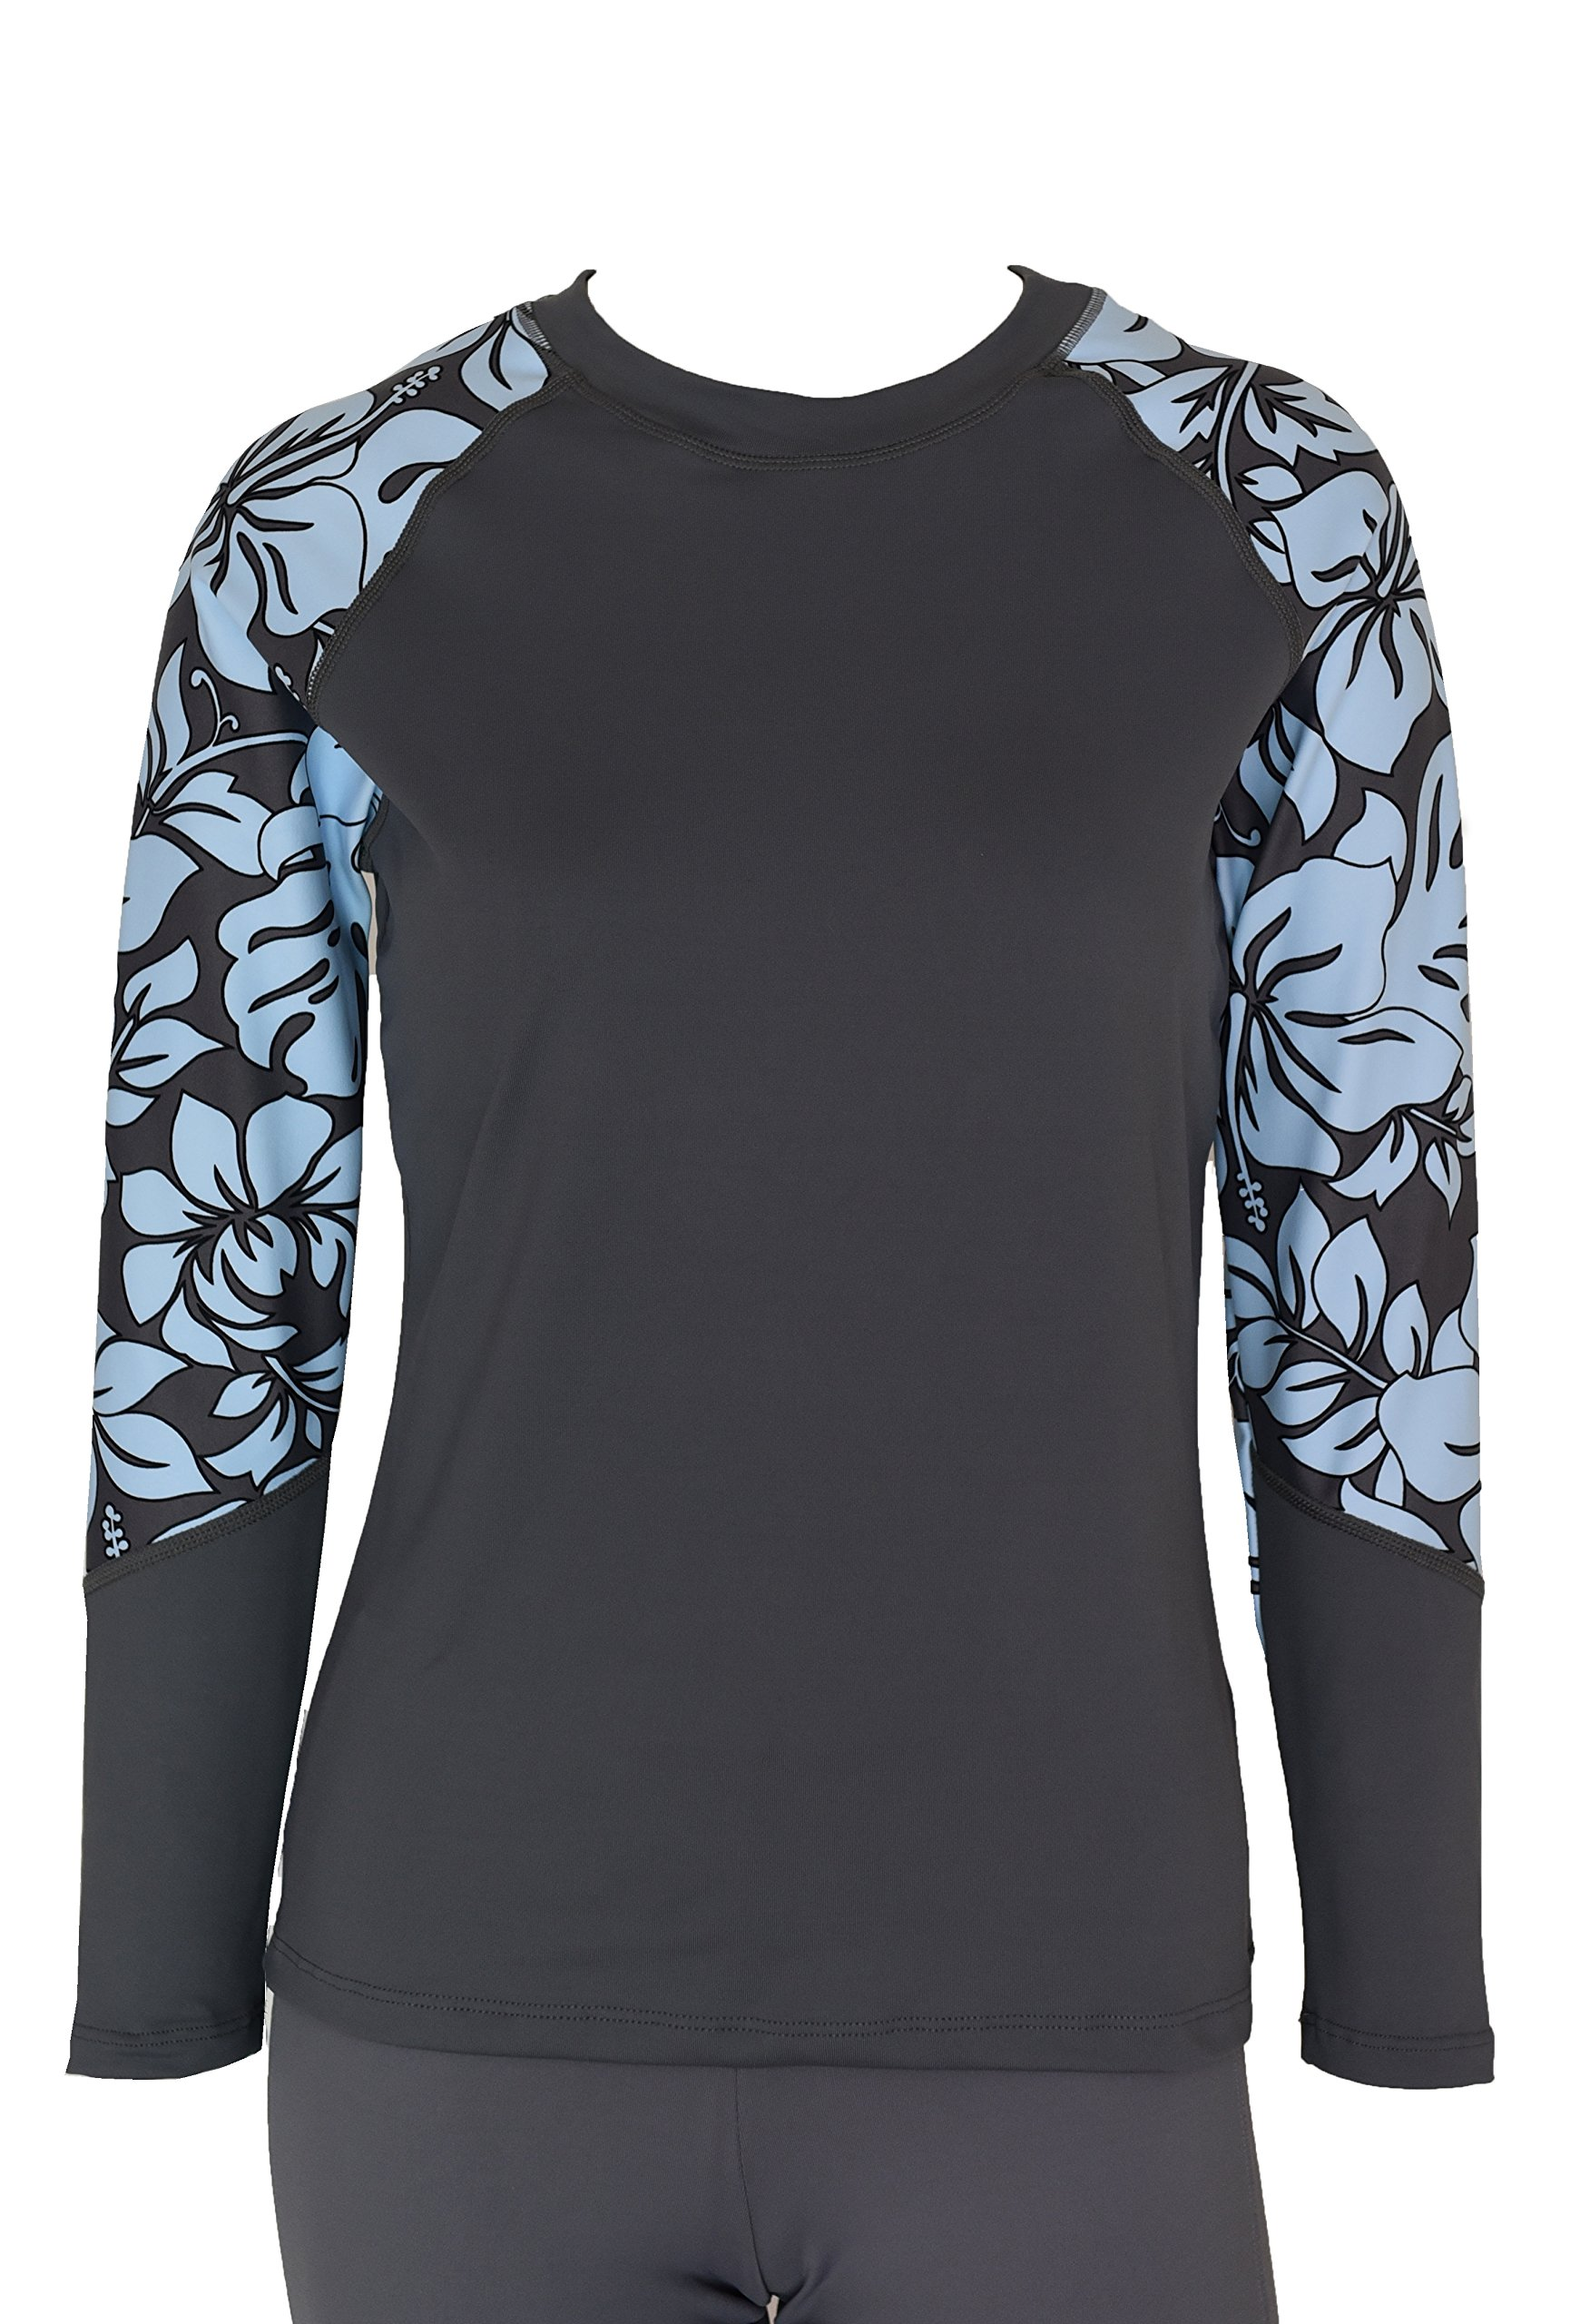 Private Island Hawaii UV Women Rash Guard Swim Yoga Active Workout Long Sleeve (XL, GwB-RSRGT) by Private Island